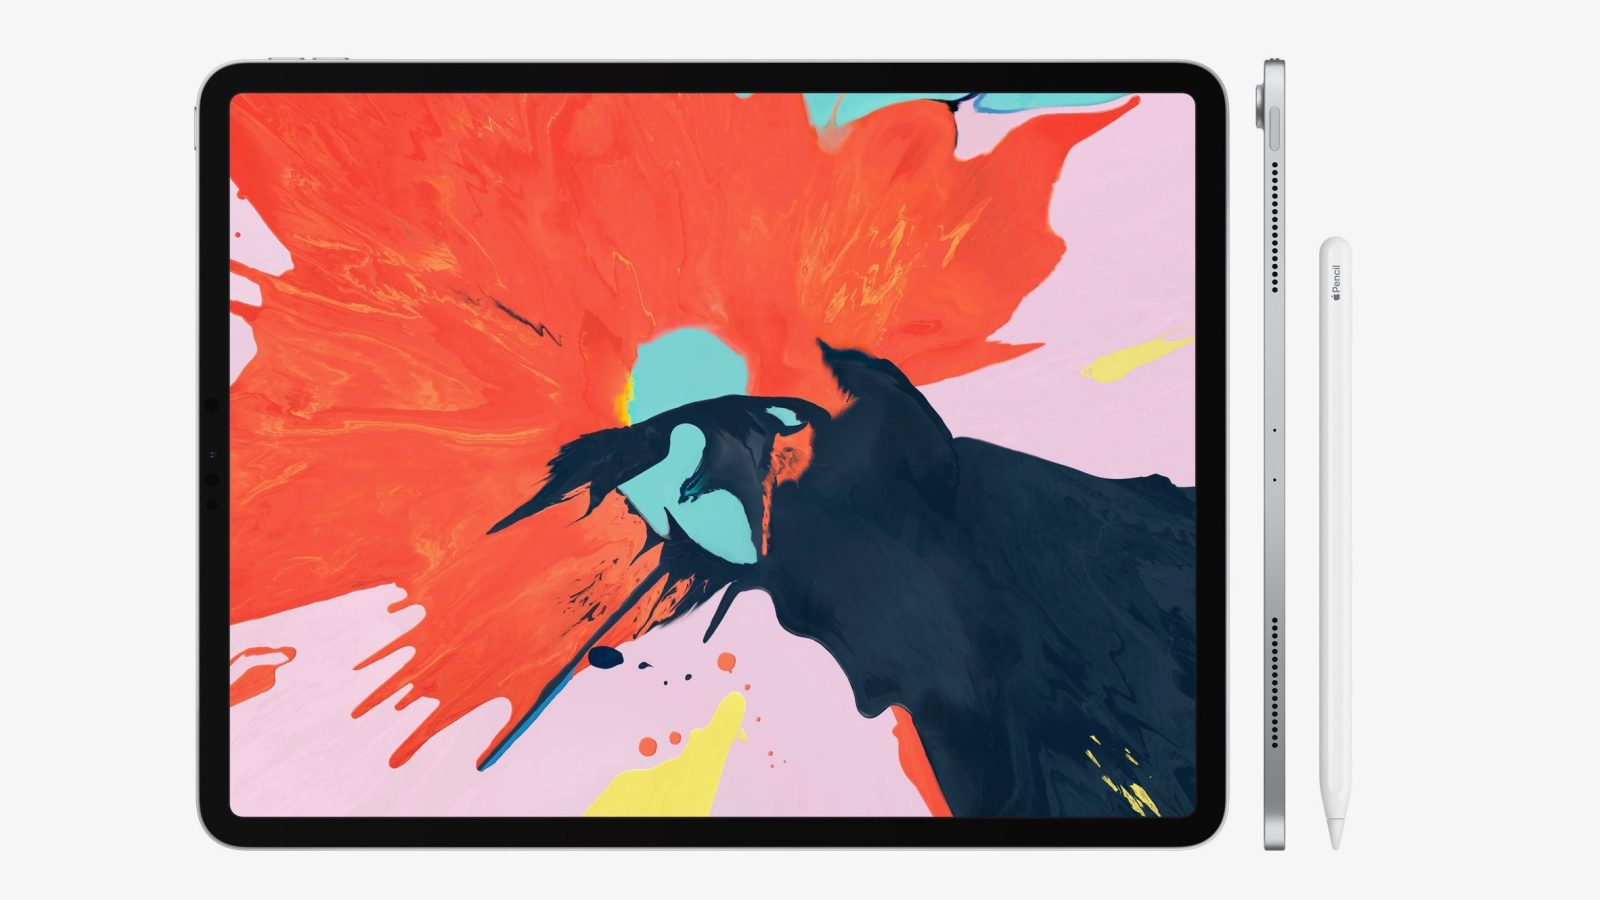 iPad Pro wallpapers: Download here for